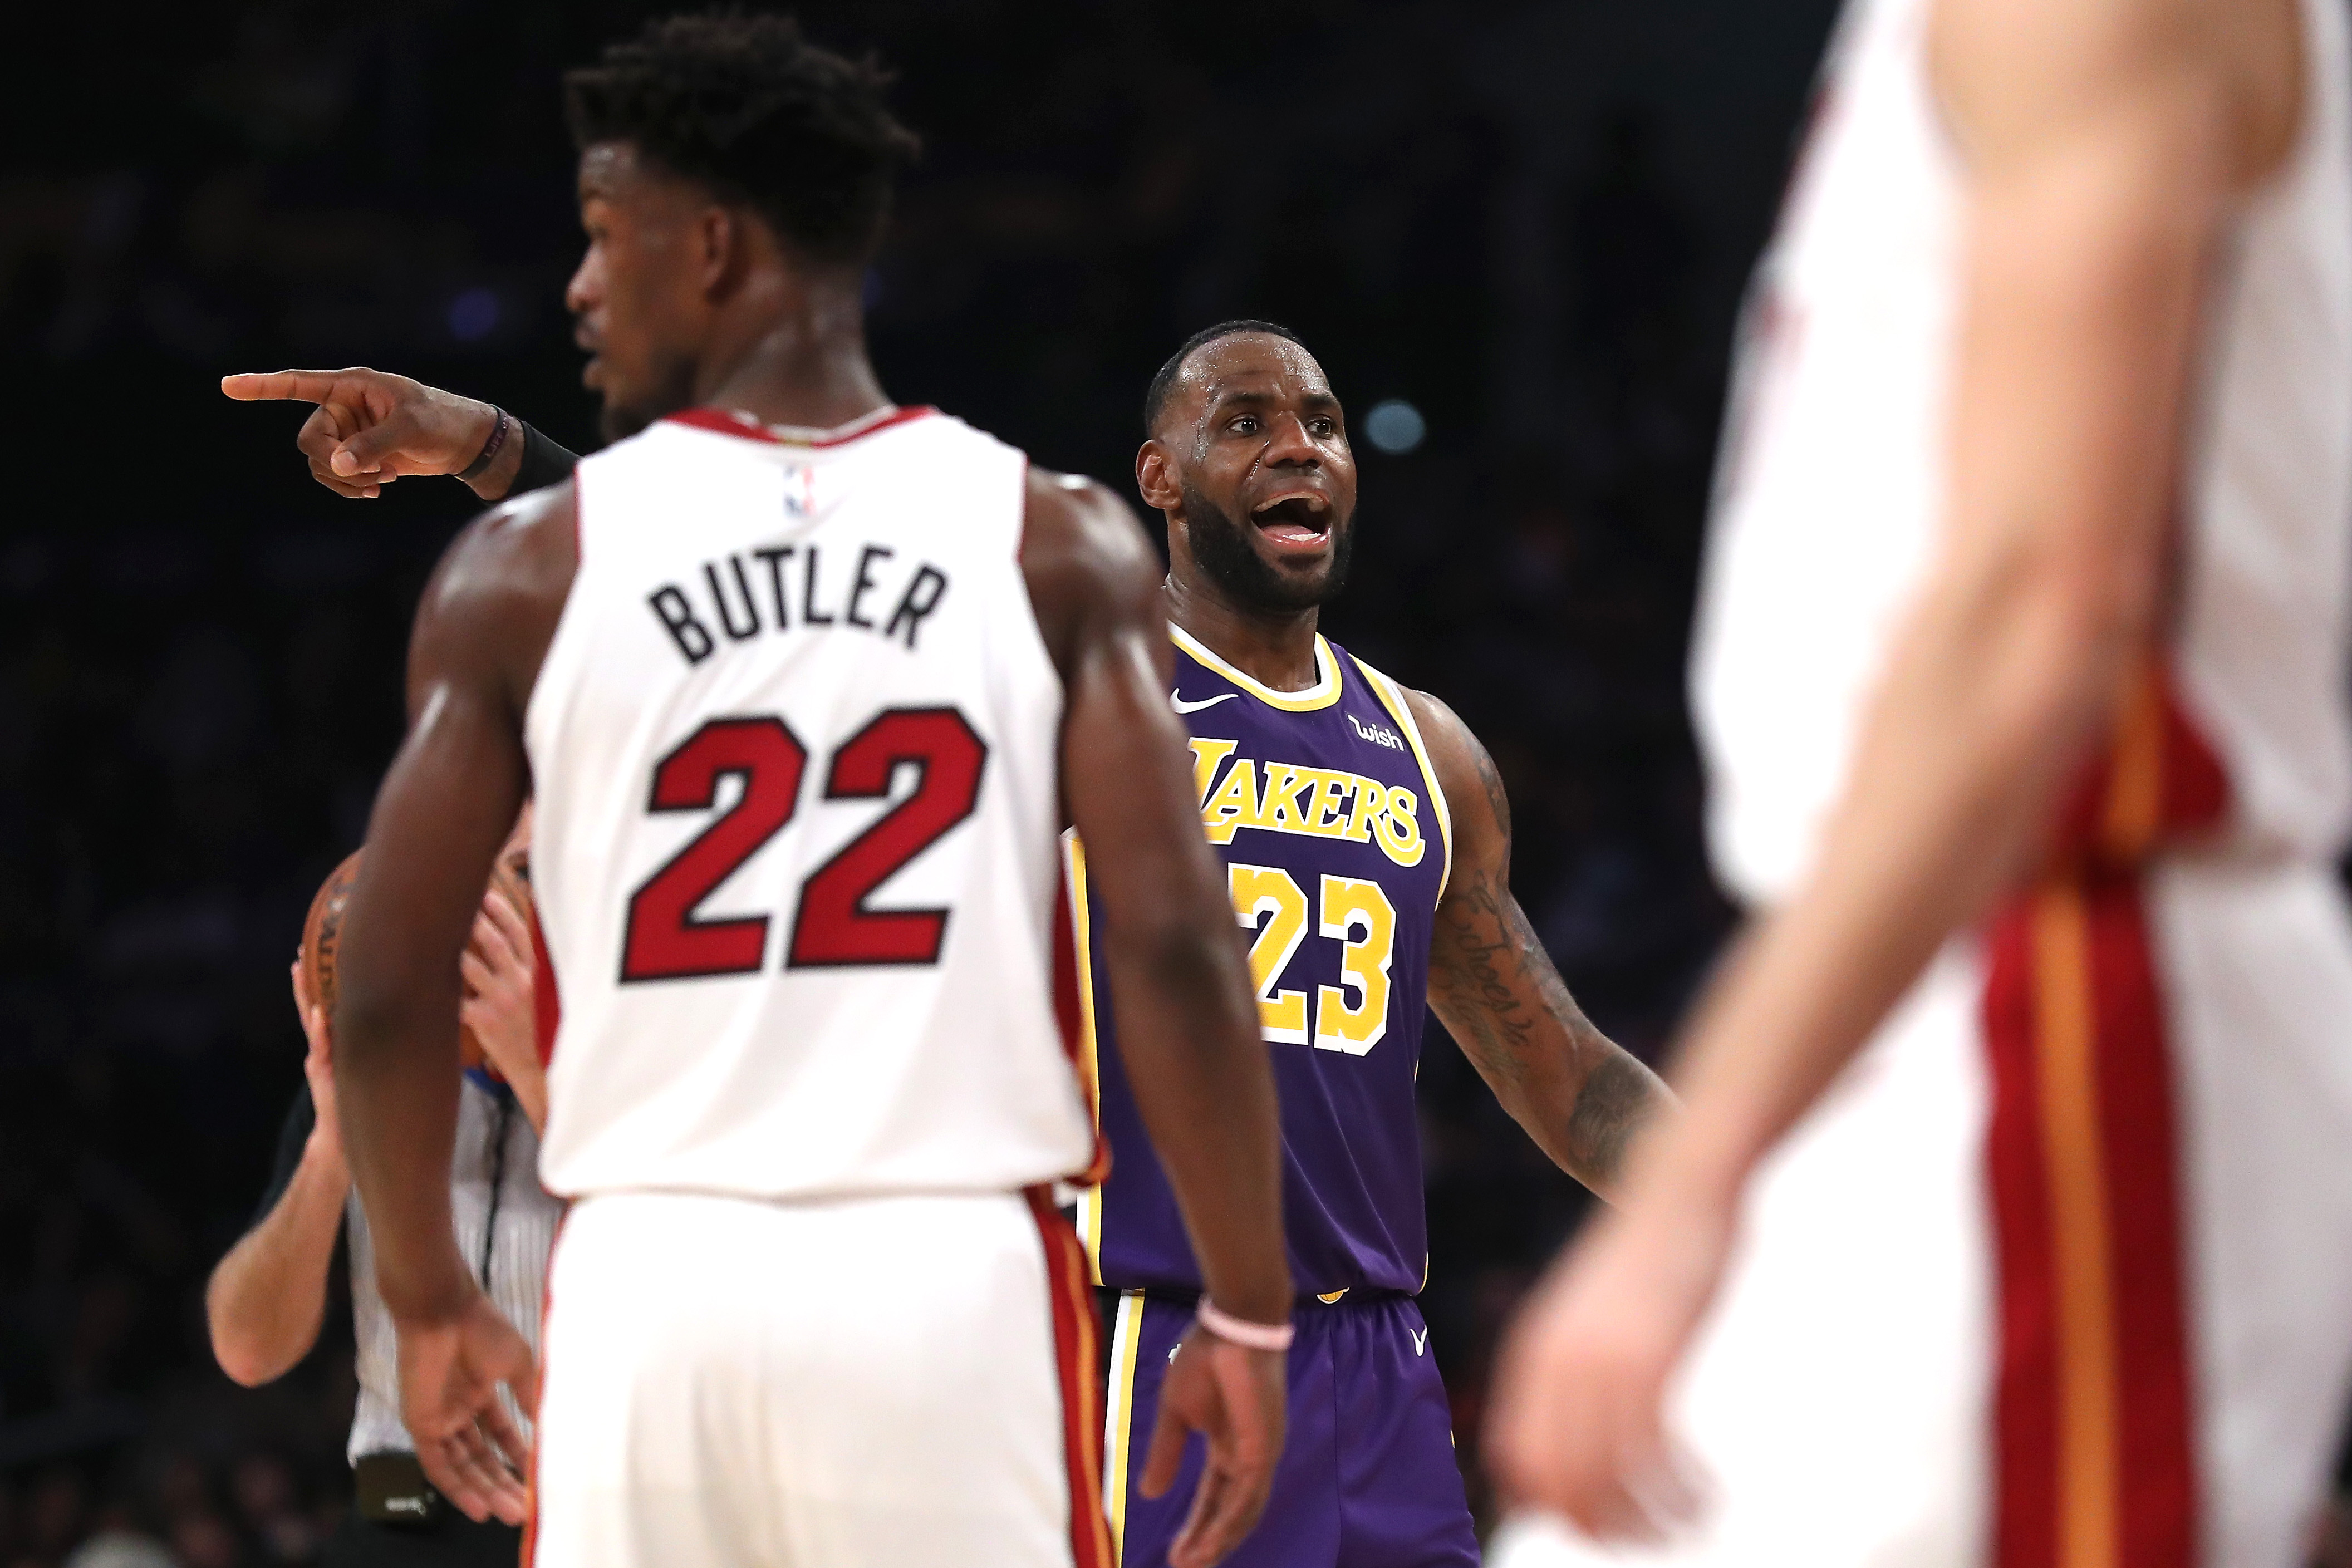 Miami Heat Vs Los Angeles Lakers Game 1 Free Live Stream 9 30 20 Watch Lebron James Vs Jimmy Butler In Nba Finals Online Time Tv Channel Nj Com